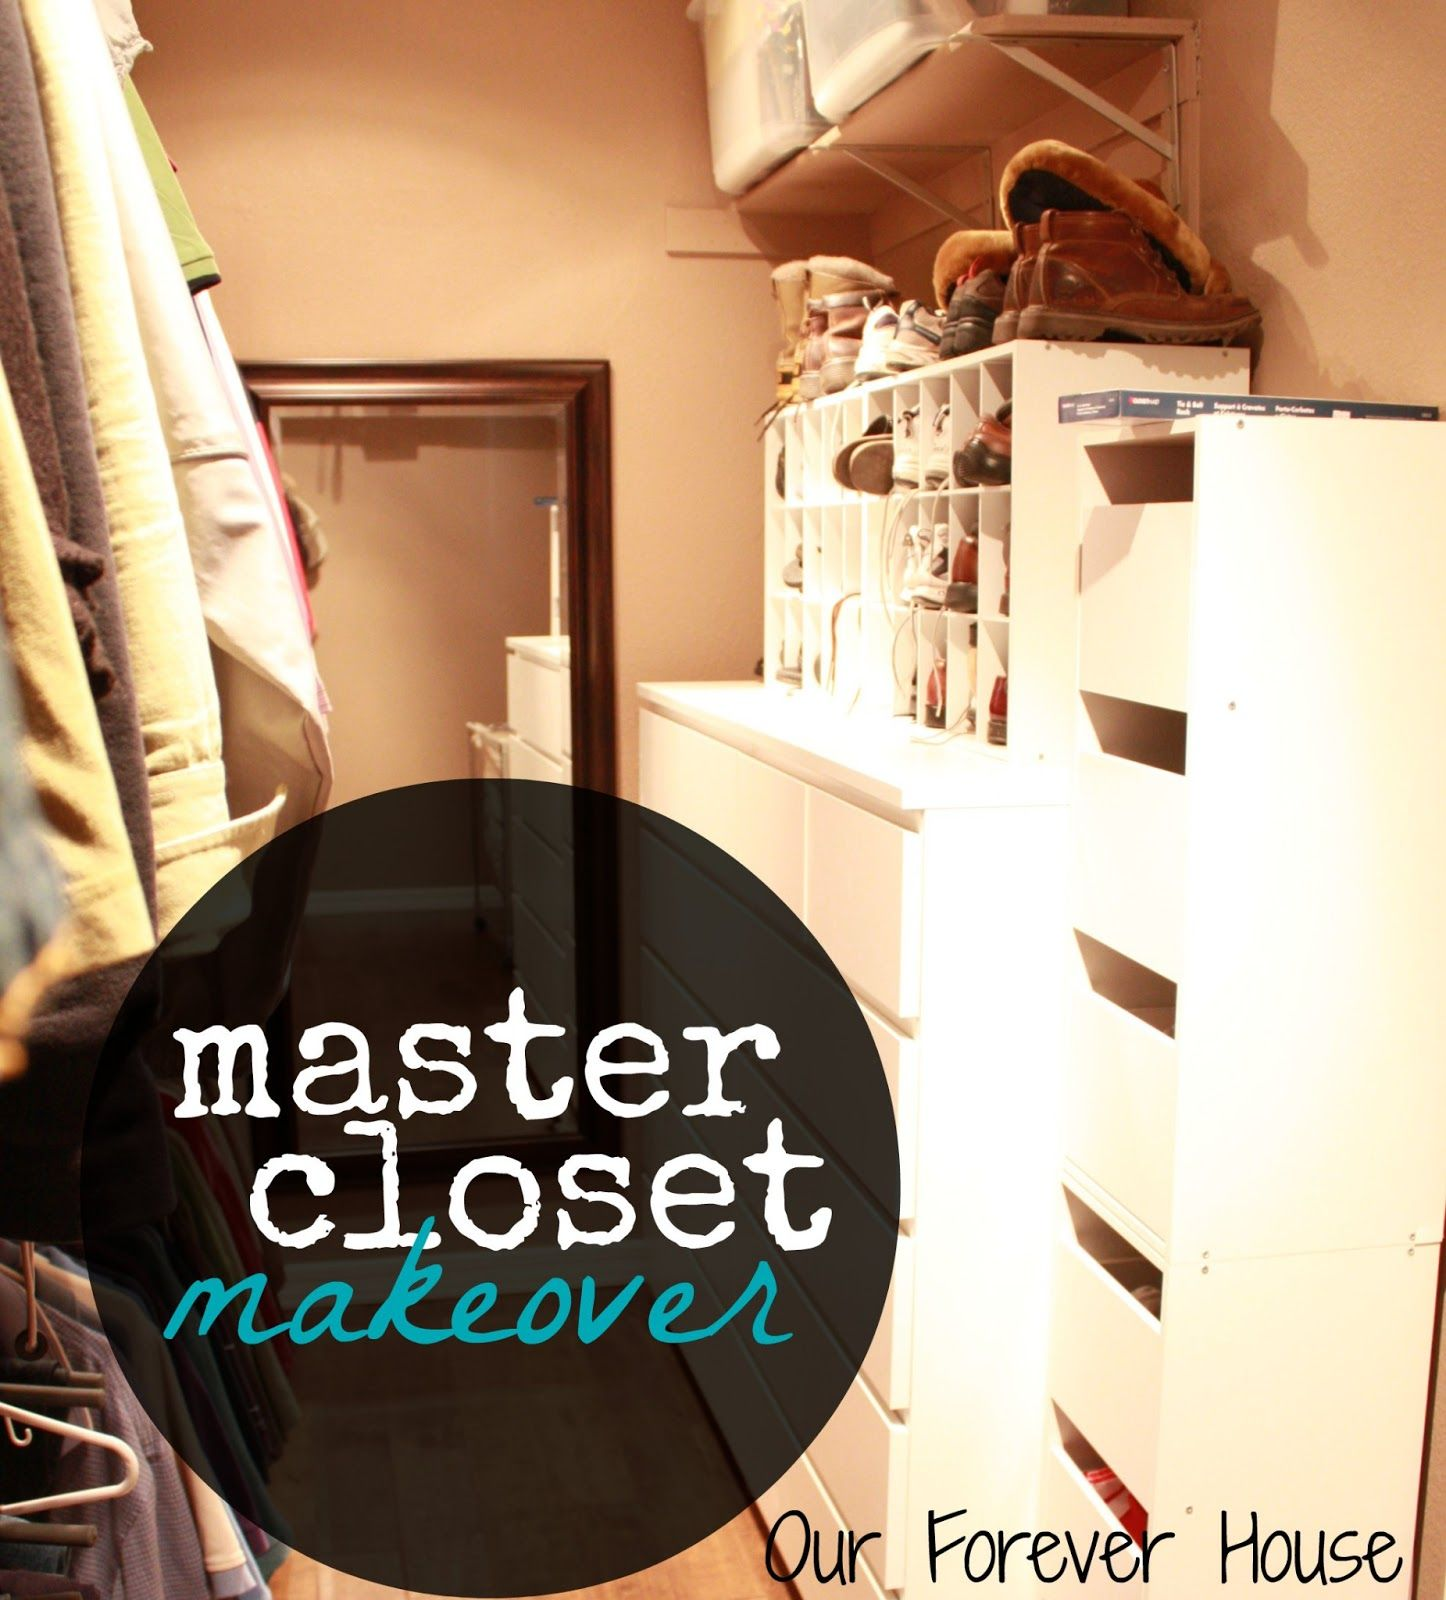 Ikea Malm Dressers, Closetmaid Shoe Cubbies From Target. Our Forever House:  Master Closet